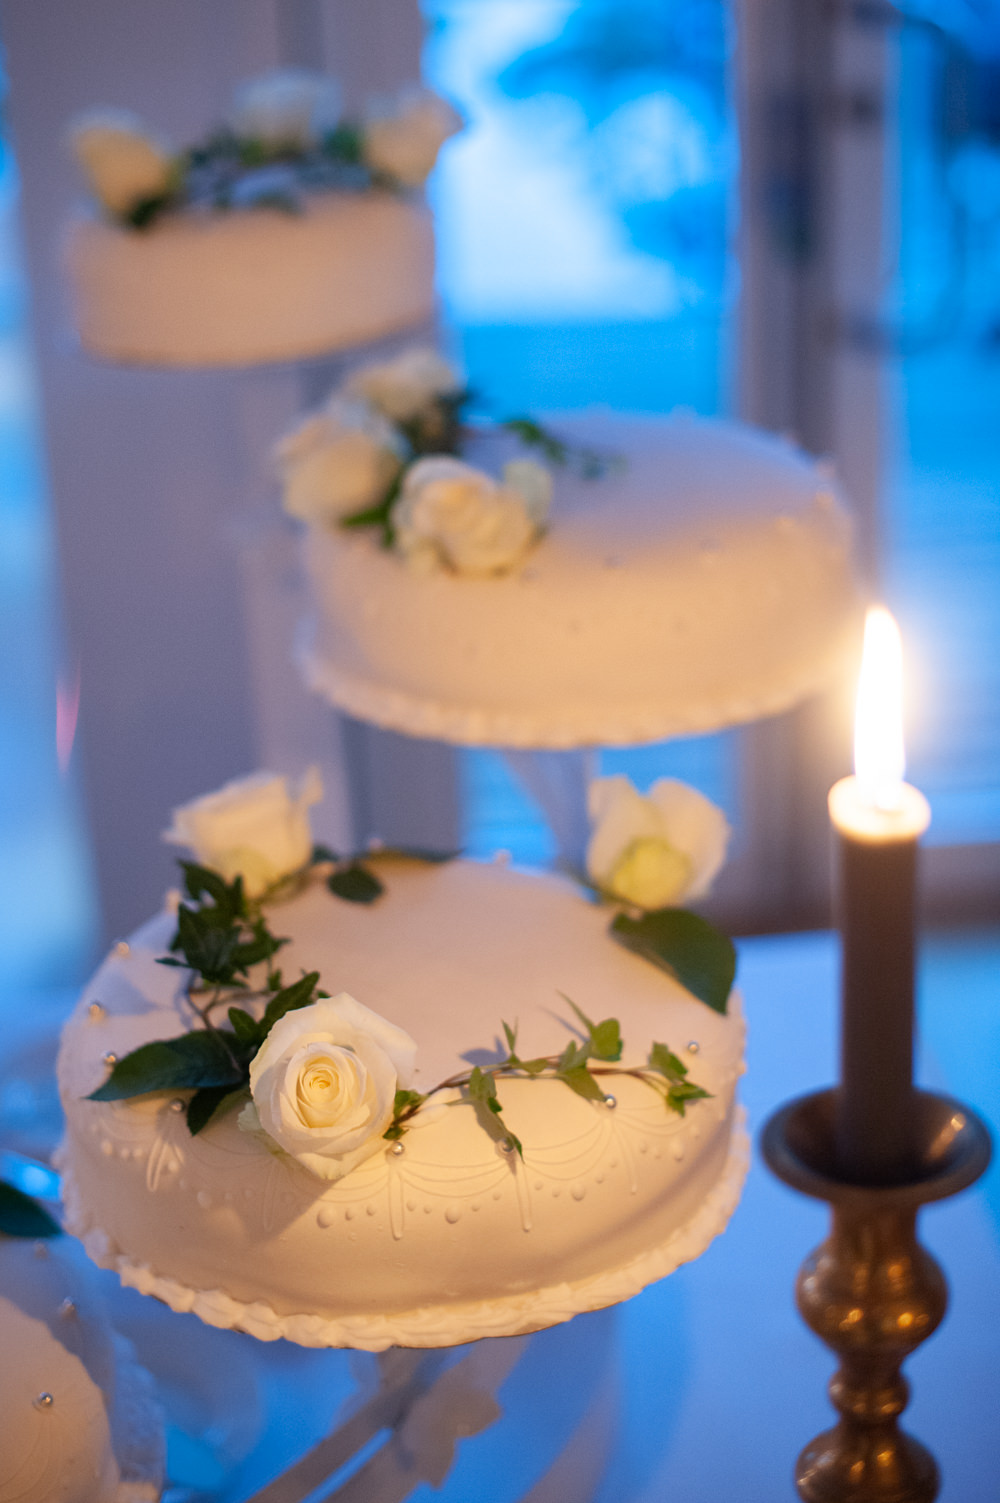 Cake Iced Flowers Candles Greenery Norway Wedding Maximilian Photography